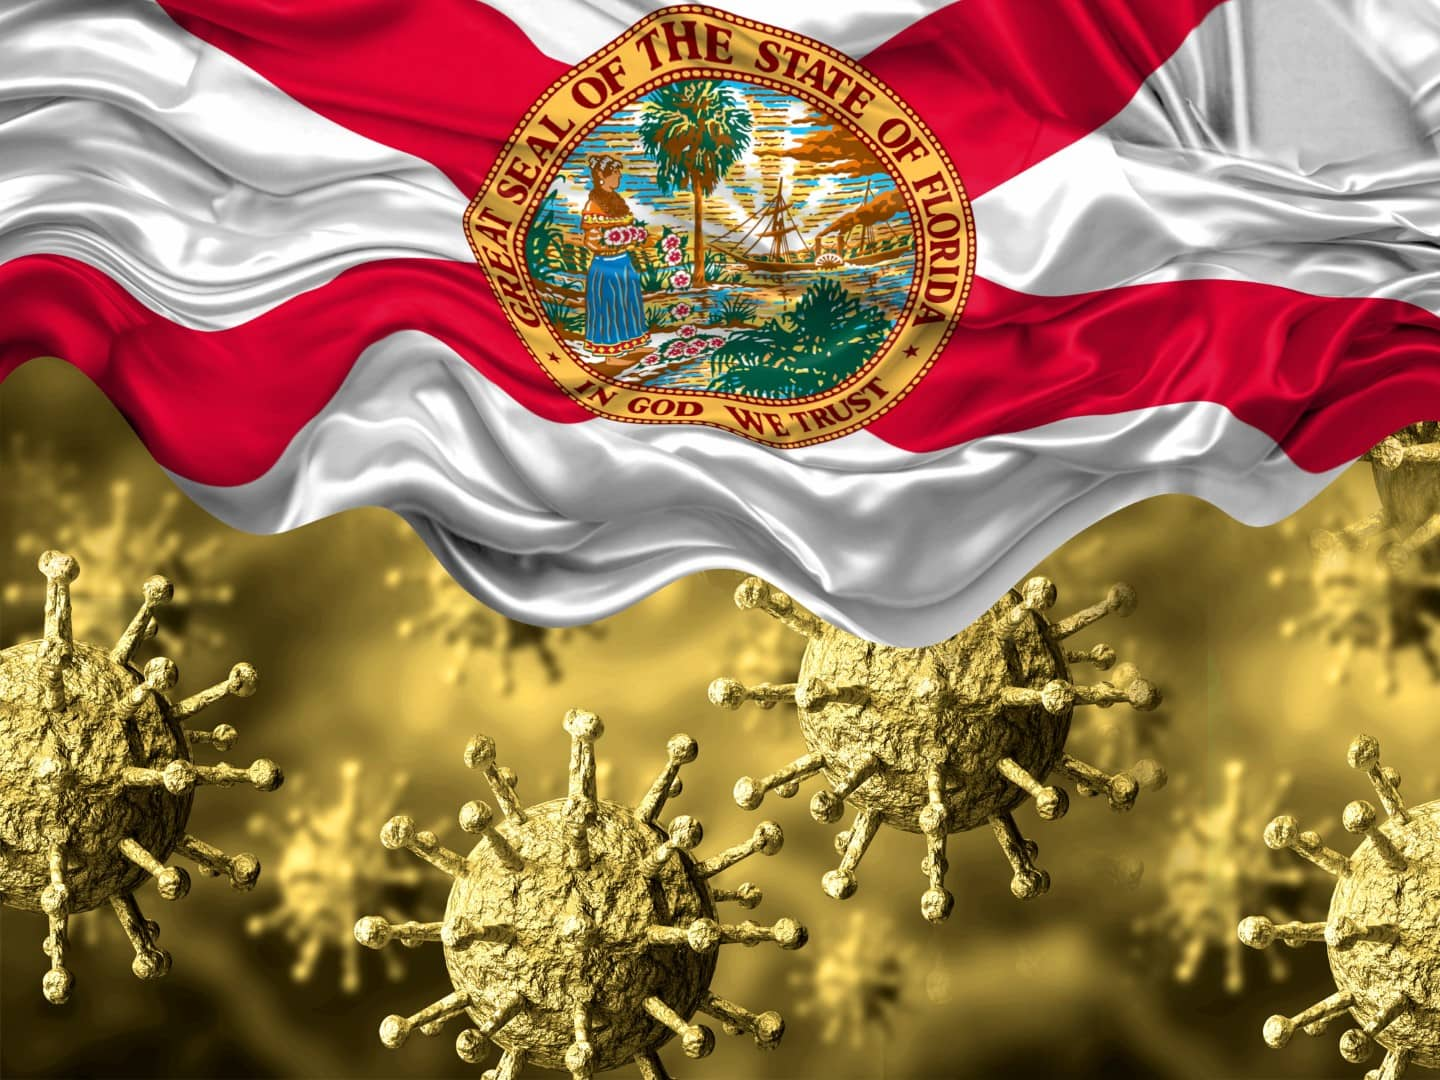 enlarged coronavirus, covid-19 under the flag of Florida state. Pandemic of respiratory disease